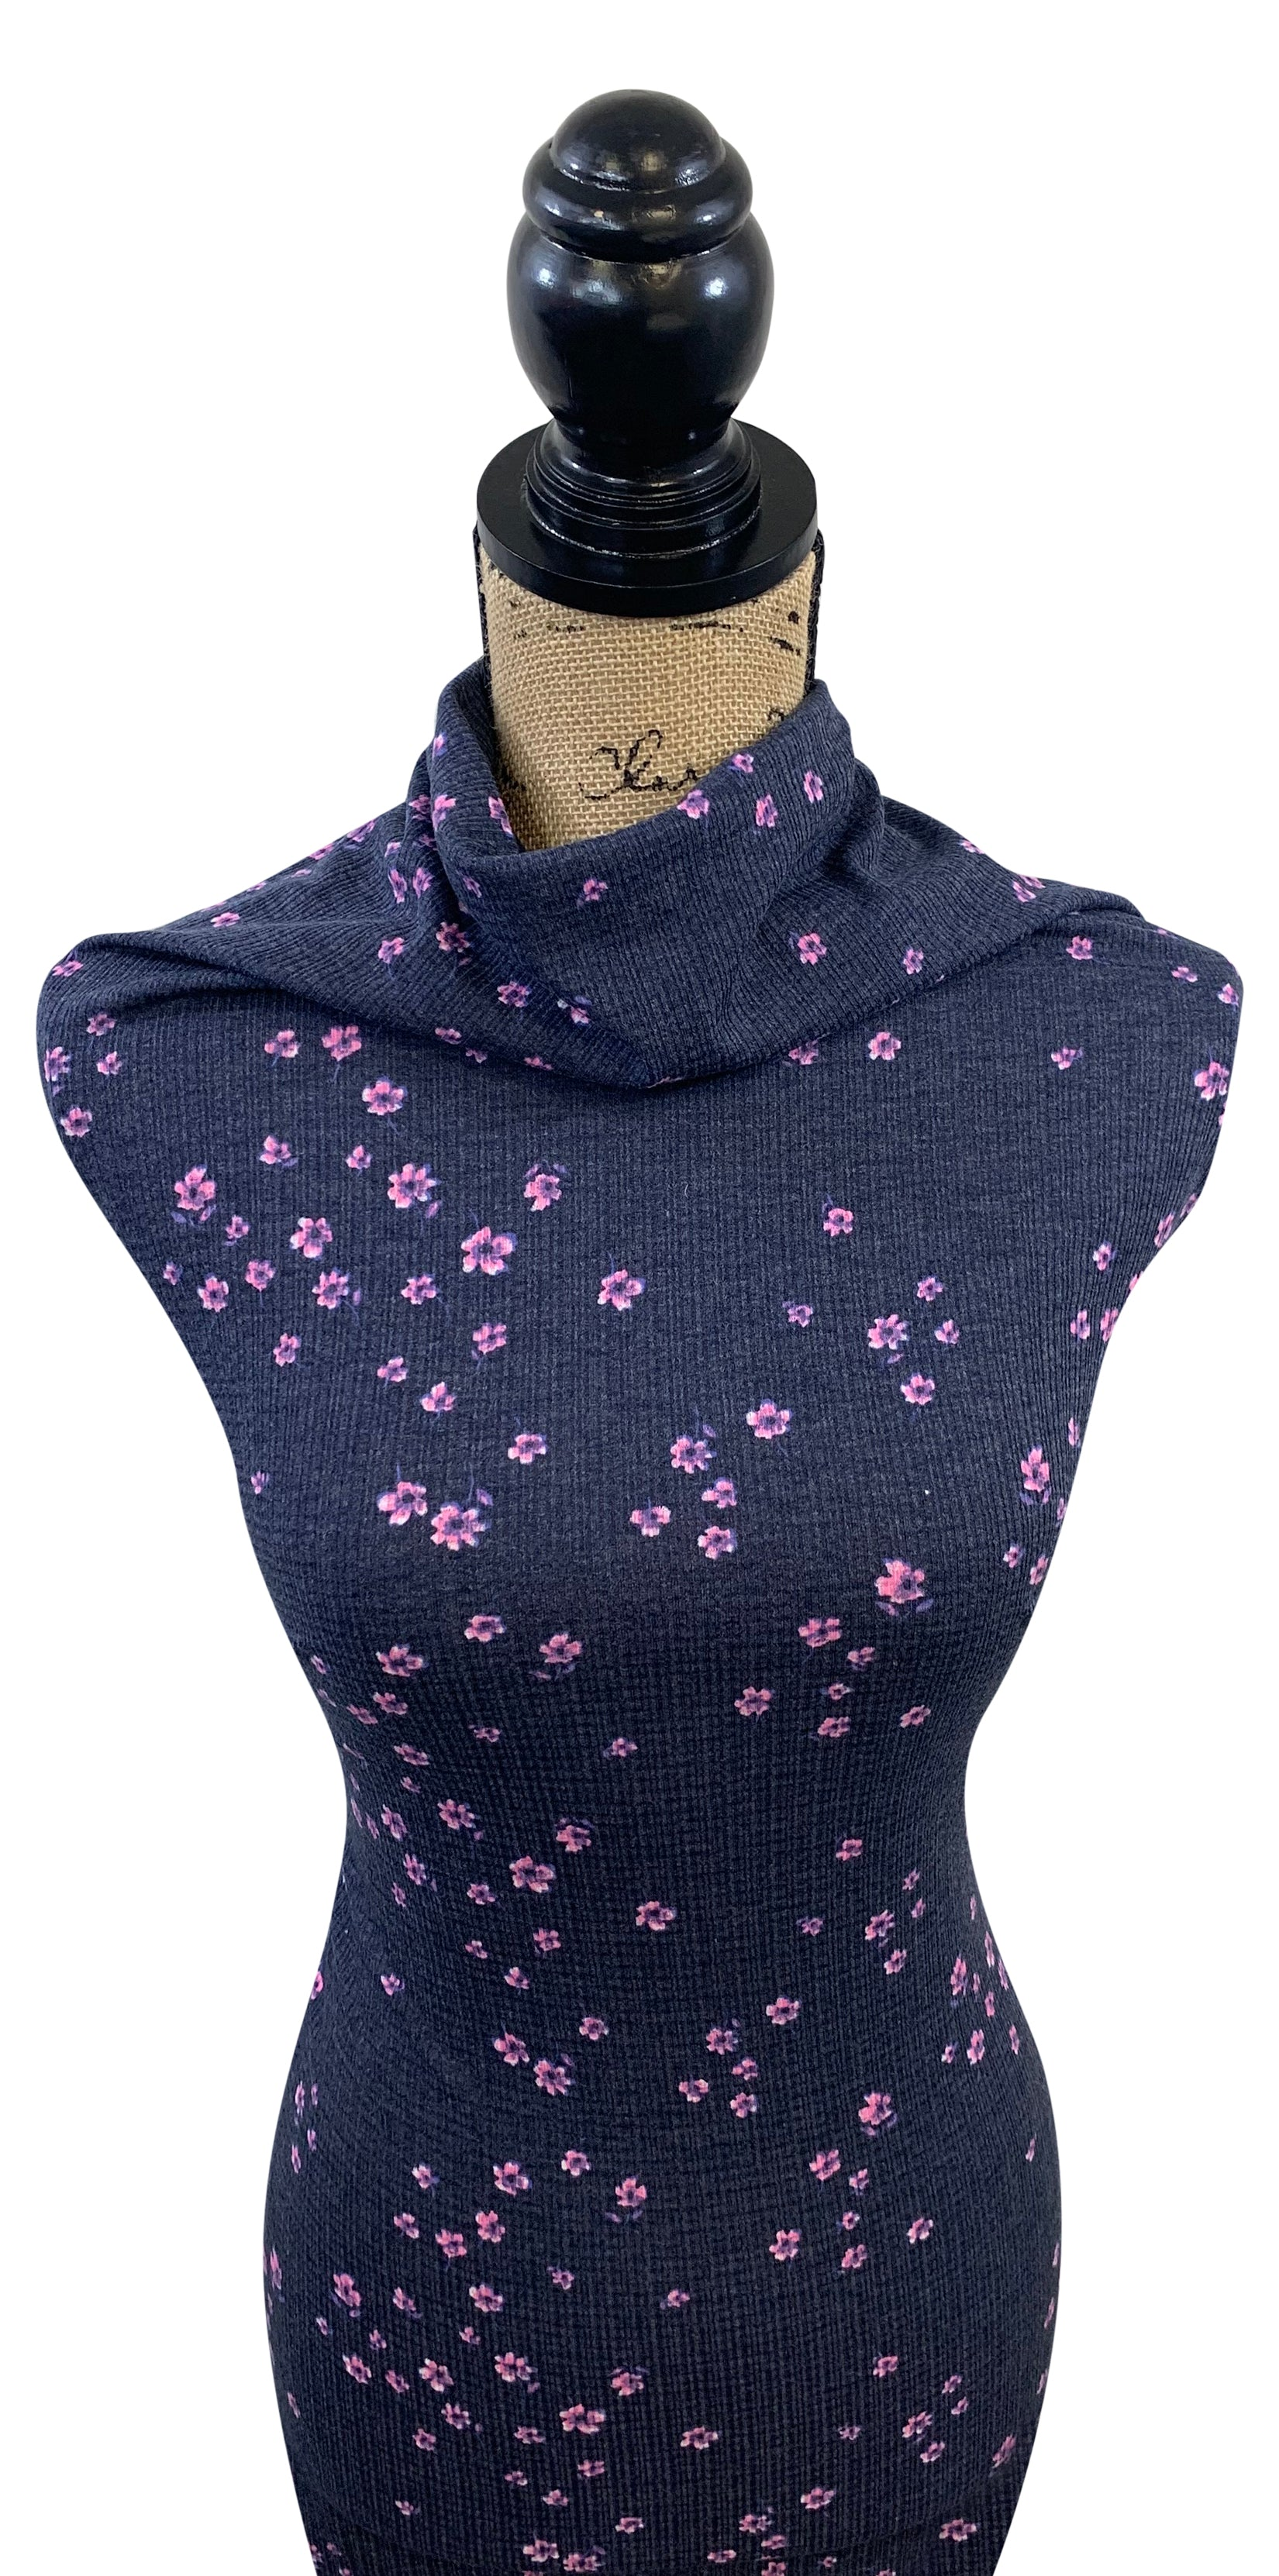 Pointelle Rib Knit - Navy Floral